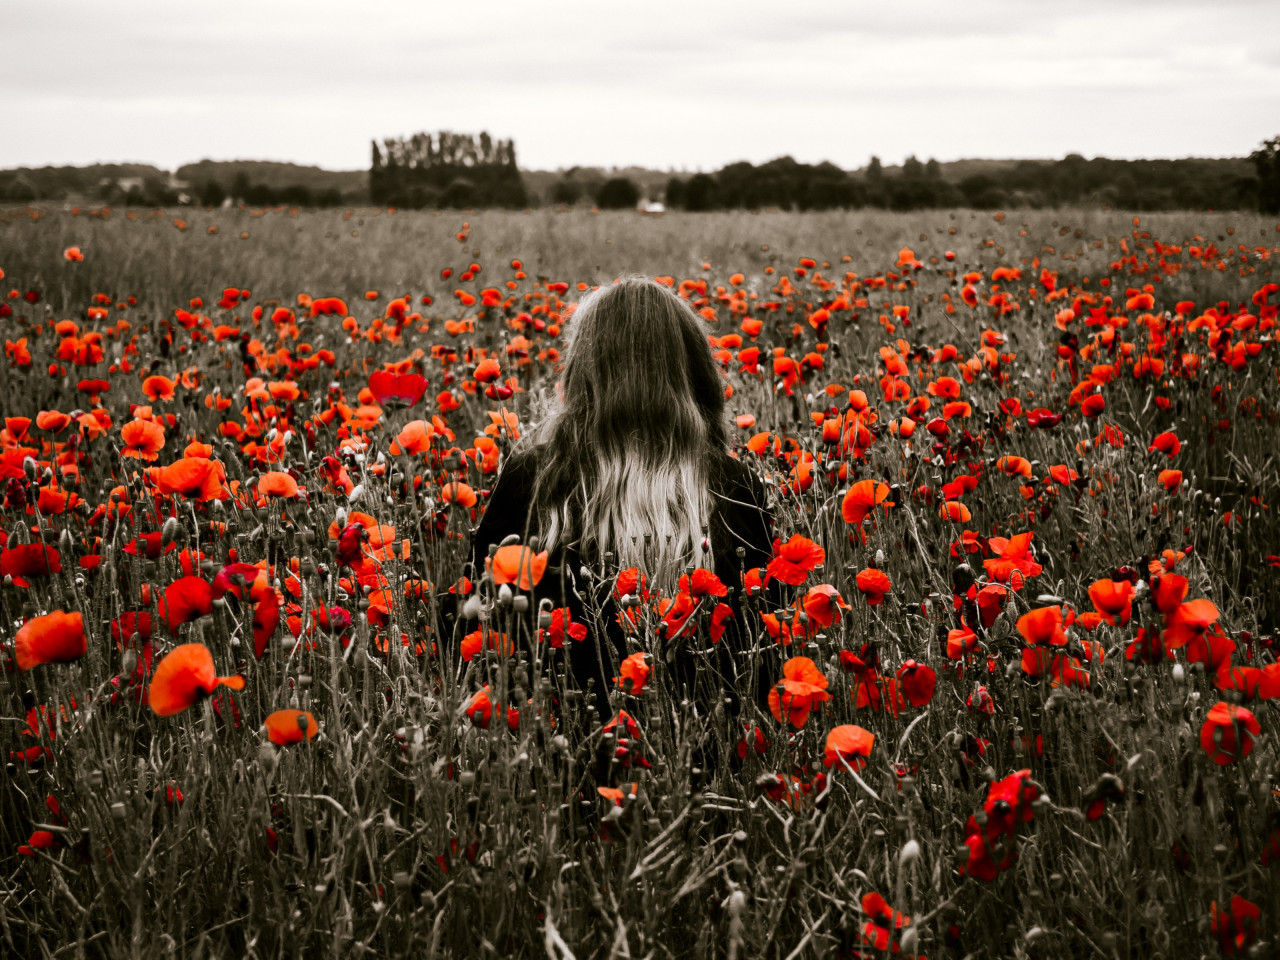 Girl in the field with red poppies wallpaper 1280x960